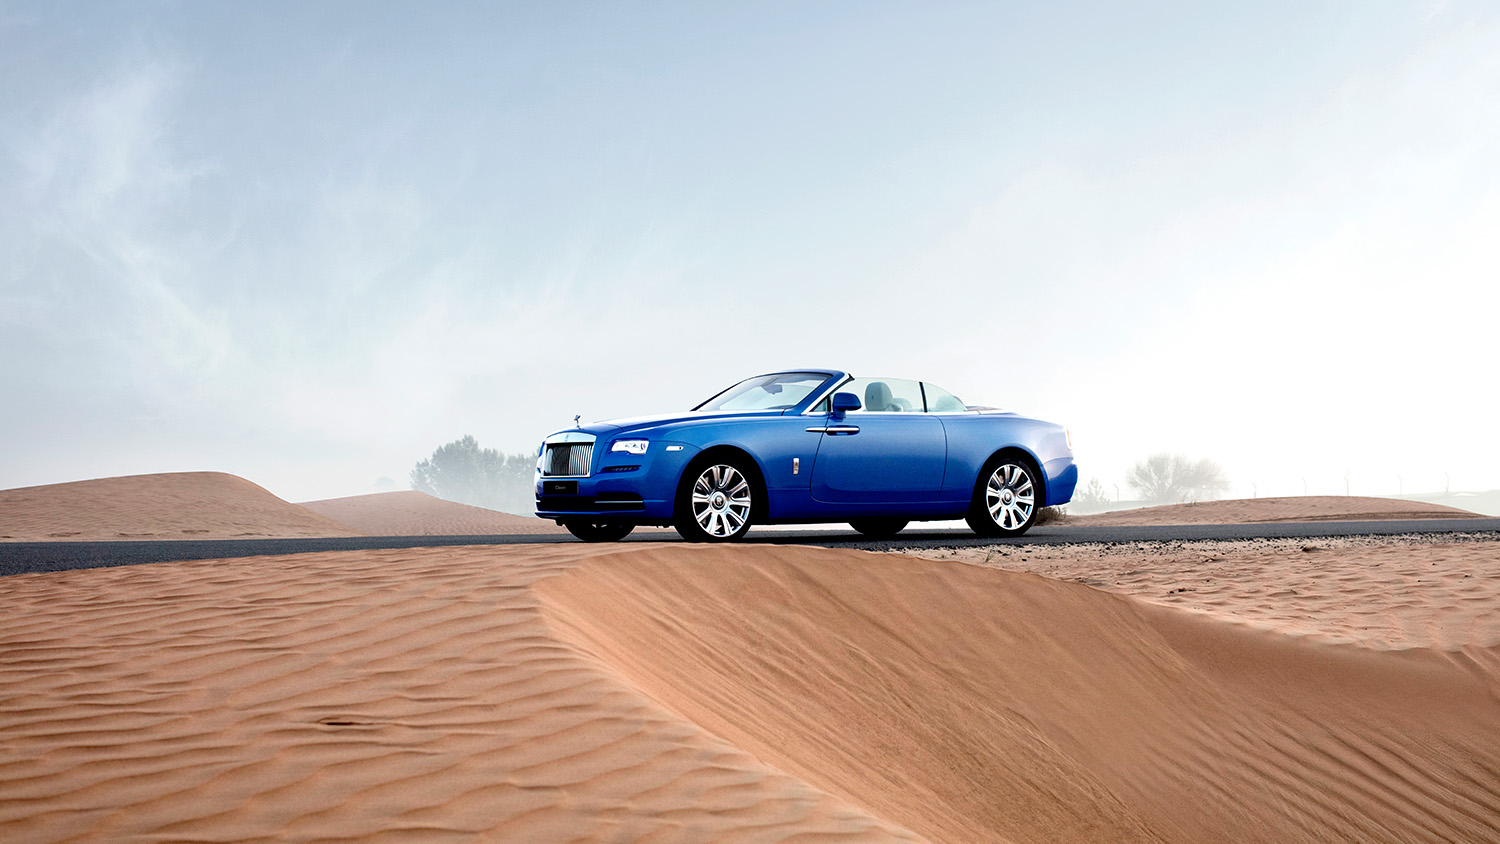 _Rolls_Royce_Exceptional_Encounter_1500x844px_01.jpg